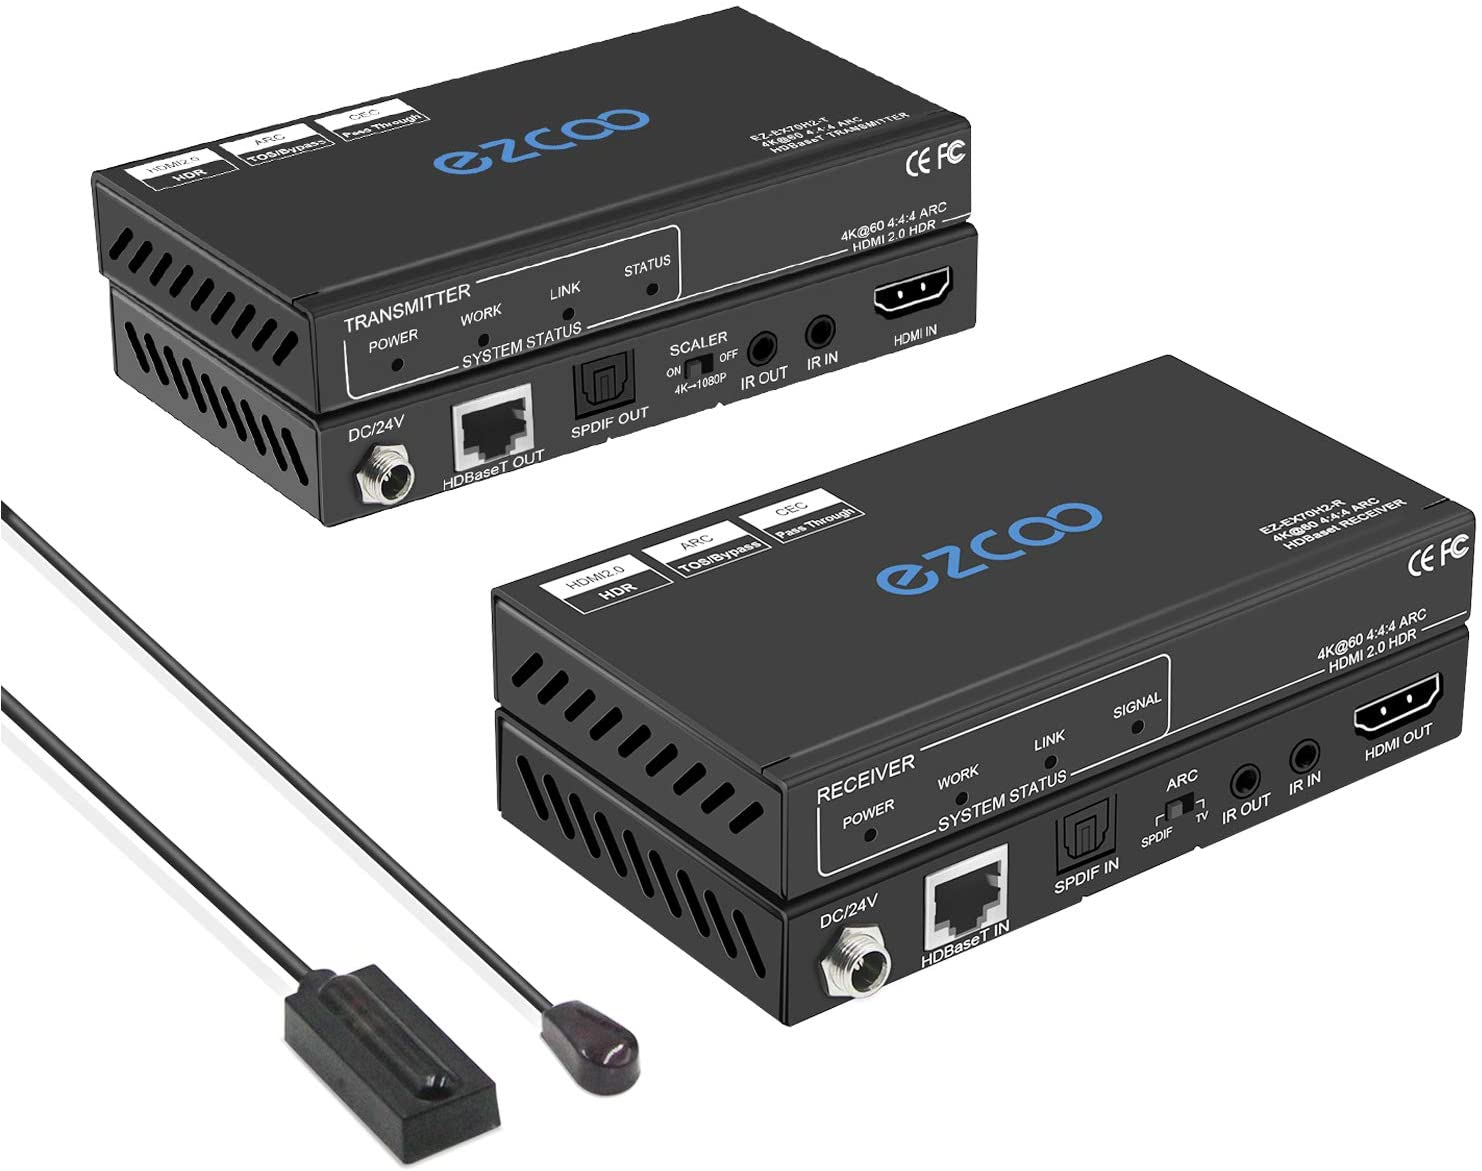 HDMI 2.0 Extender ARC 4K 60Hz (4:4:4 8bit) HDR10 18Gbps by Cat5e Cat6 with SPDIF Toslink,Bi-Directional PoE+IR+CEC - 230ft 1080P,130ft 4K HDCP2.2, Atmos,DTS:X,4K Down-Scale,Slim Mini Case EX70H2